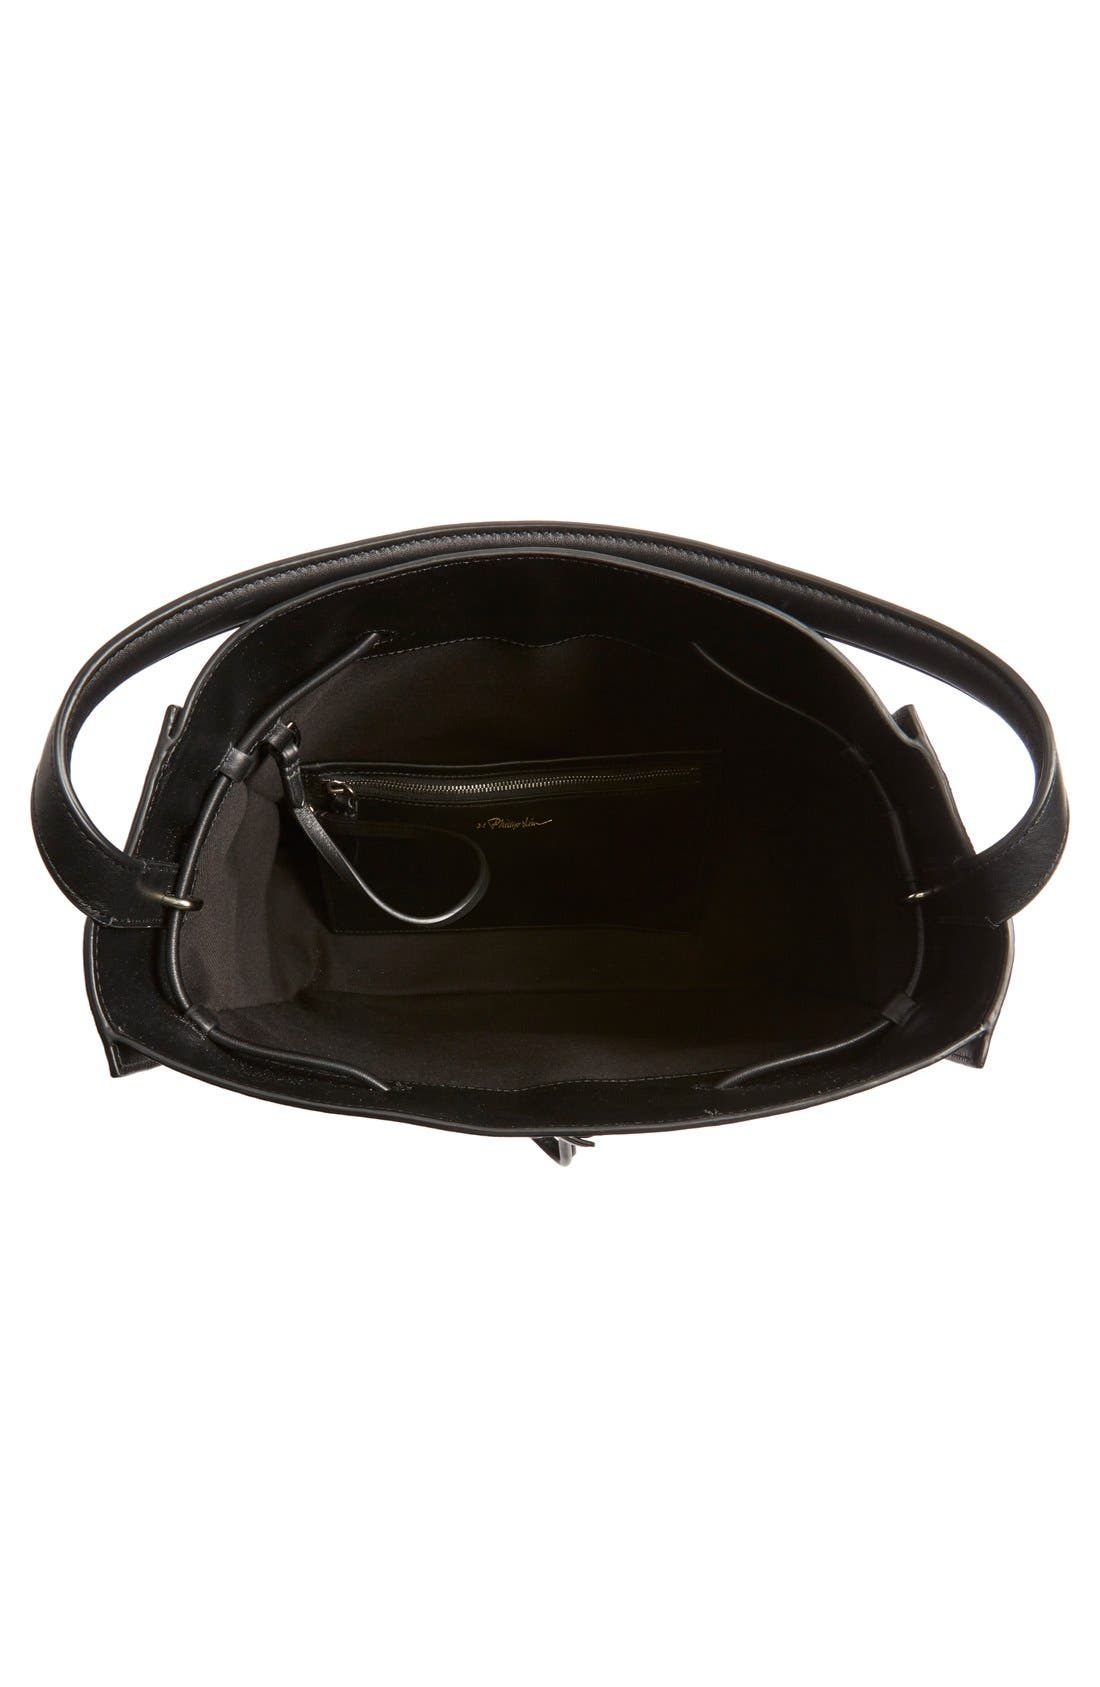 Alternate Image 4  - 3.1 Phillip Lim 'Large Soleil' Bucket Bag